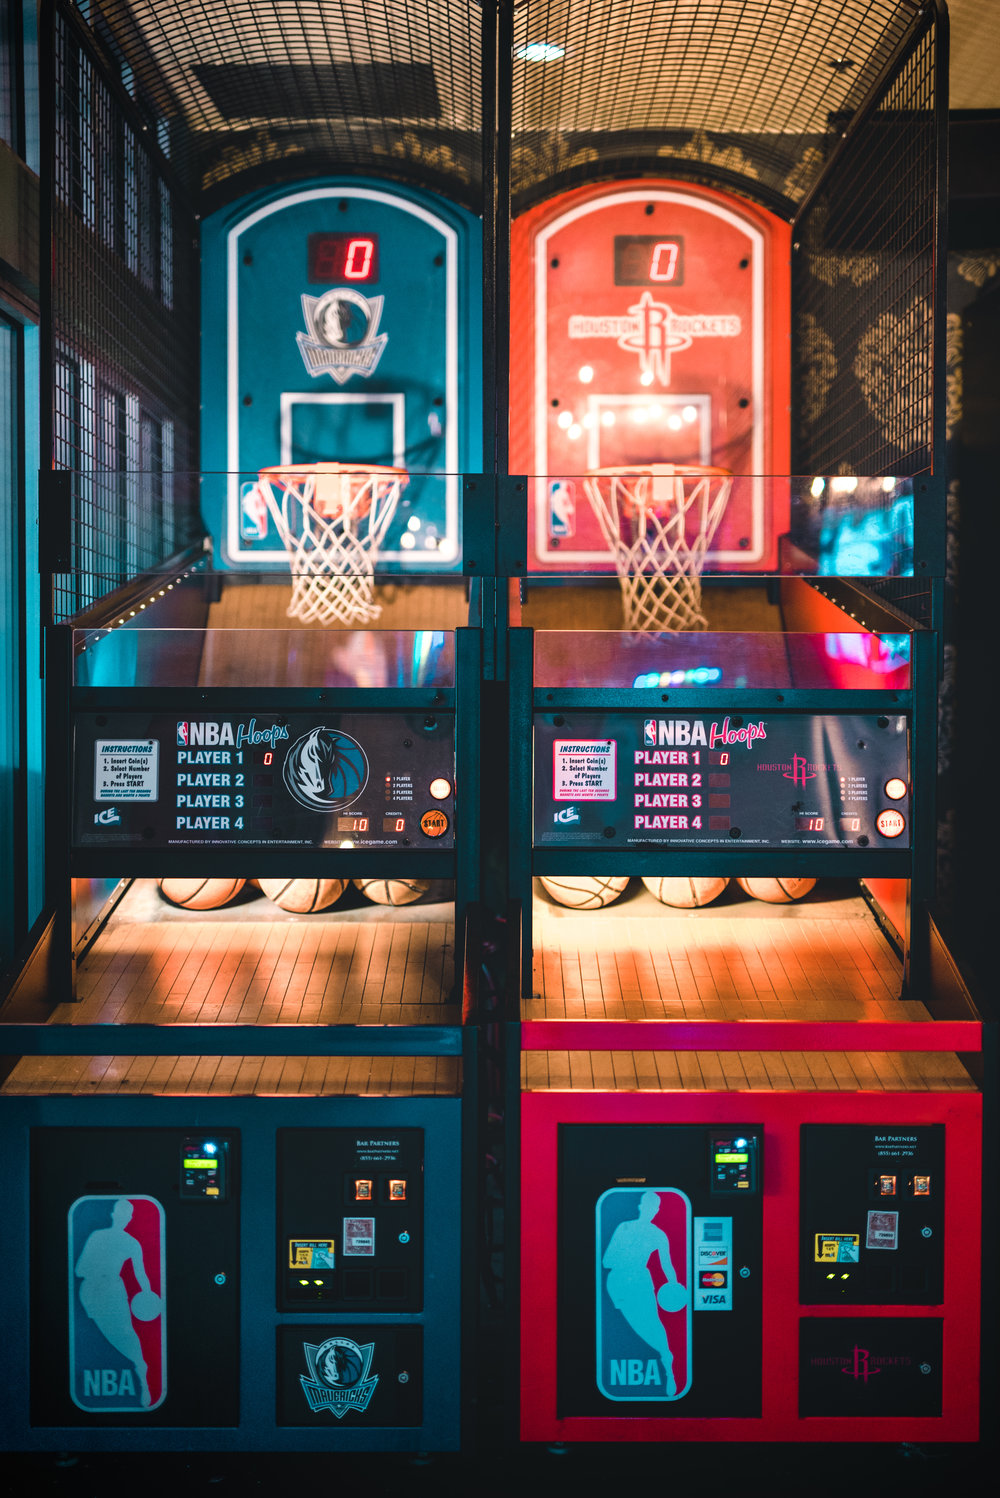 DALLAS TROPHY ROOM ARCADE GAMES